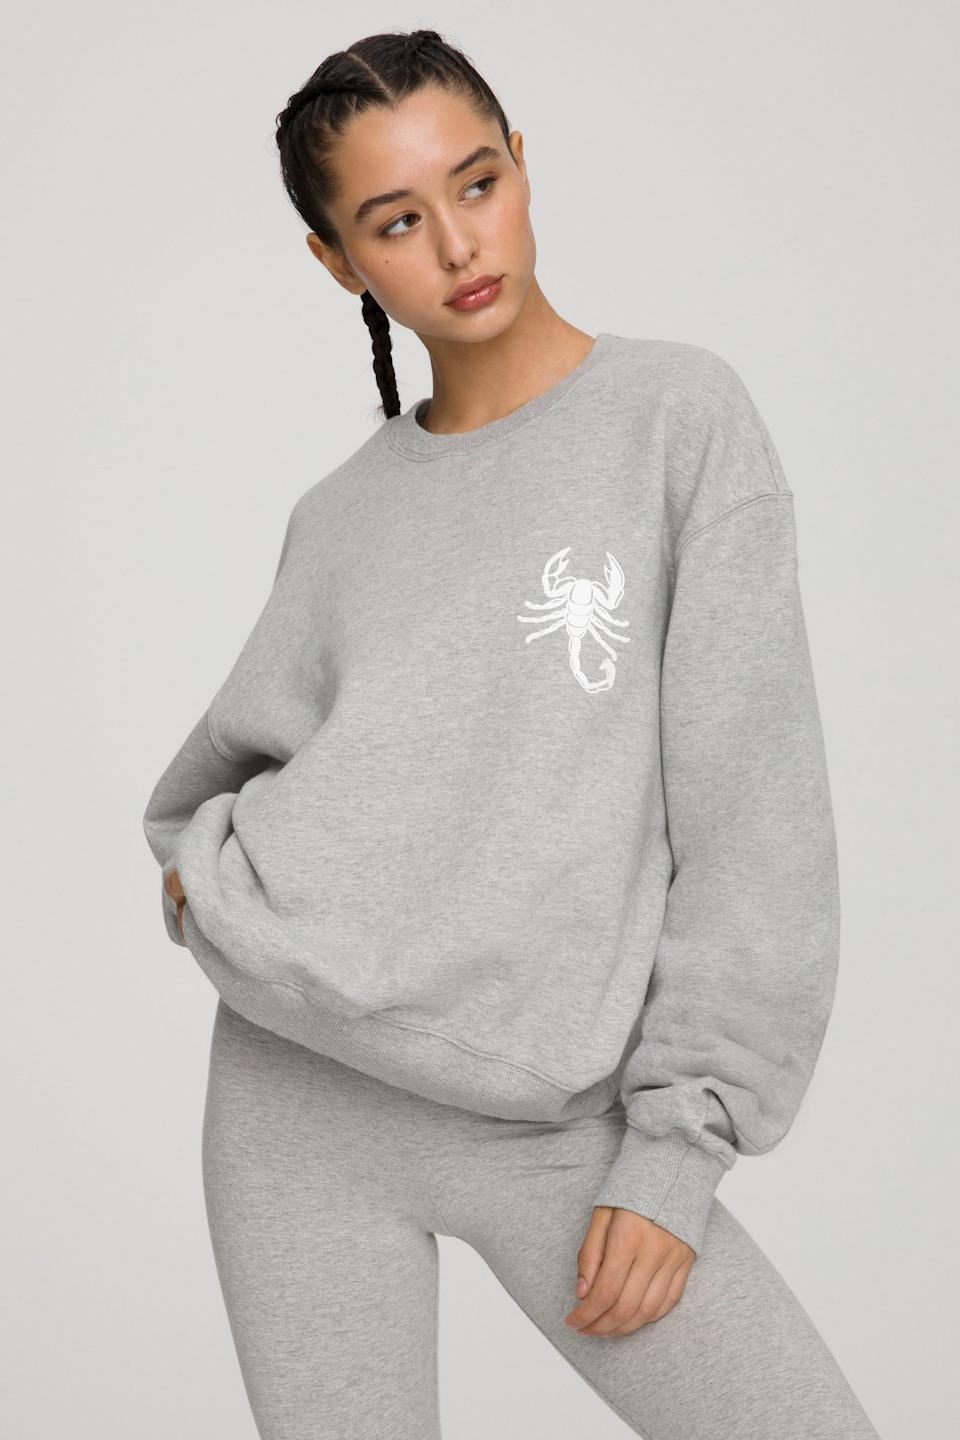 The Scorpio Zodiac Sweat Set from Good American. Sweatshirt, $124 and sweatpants, $105.